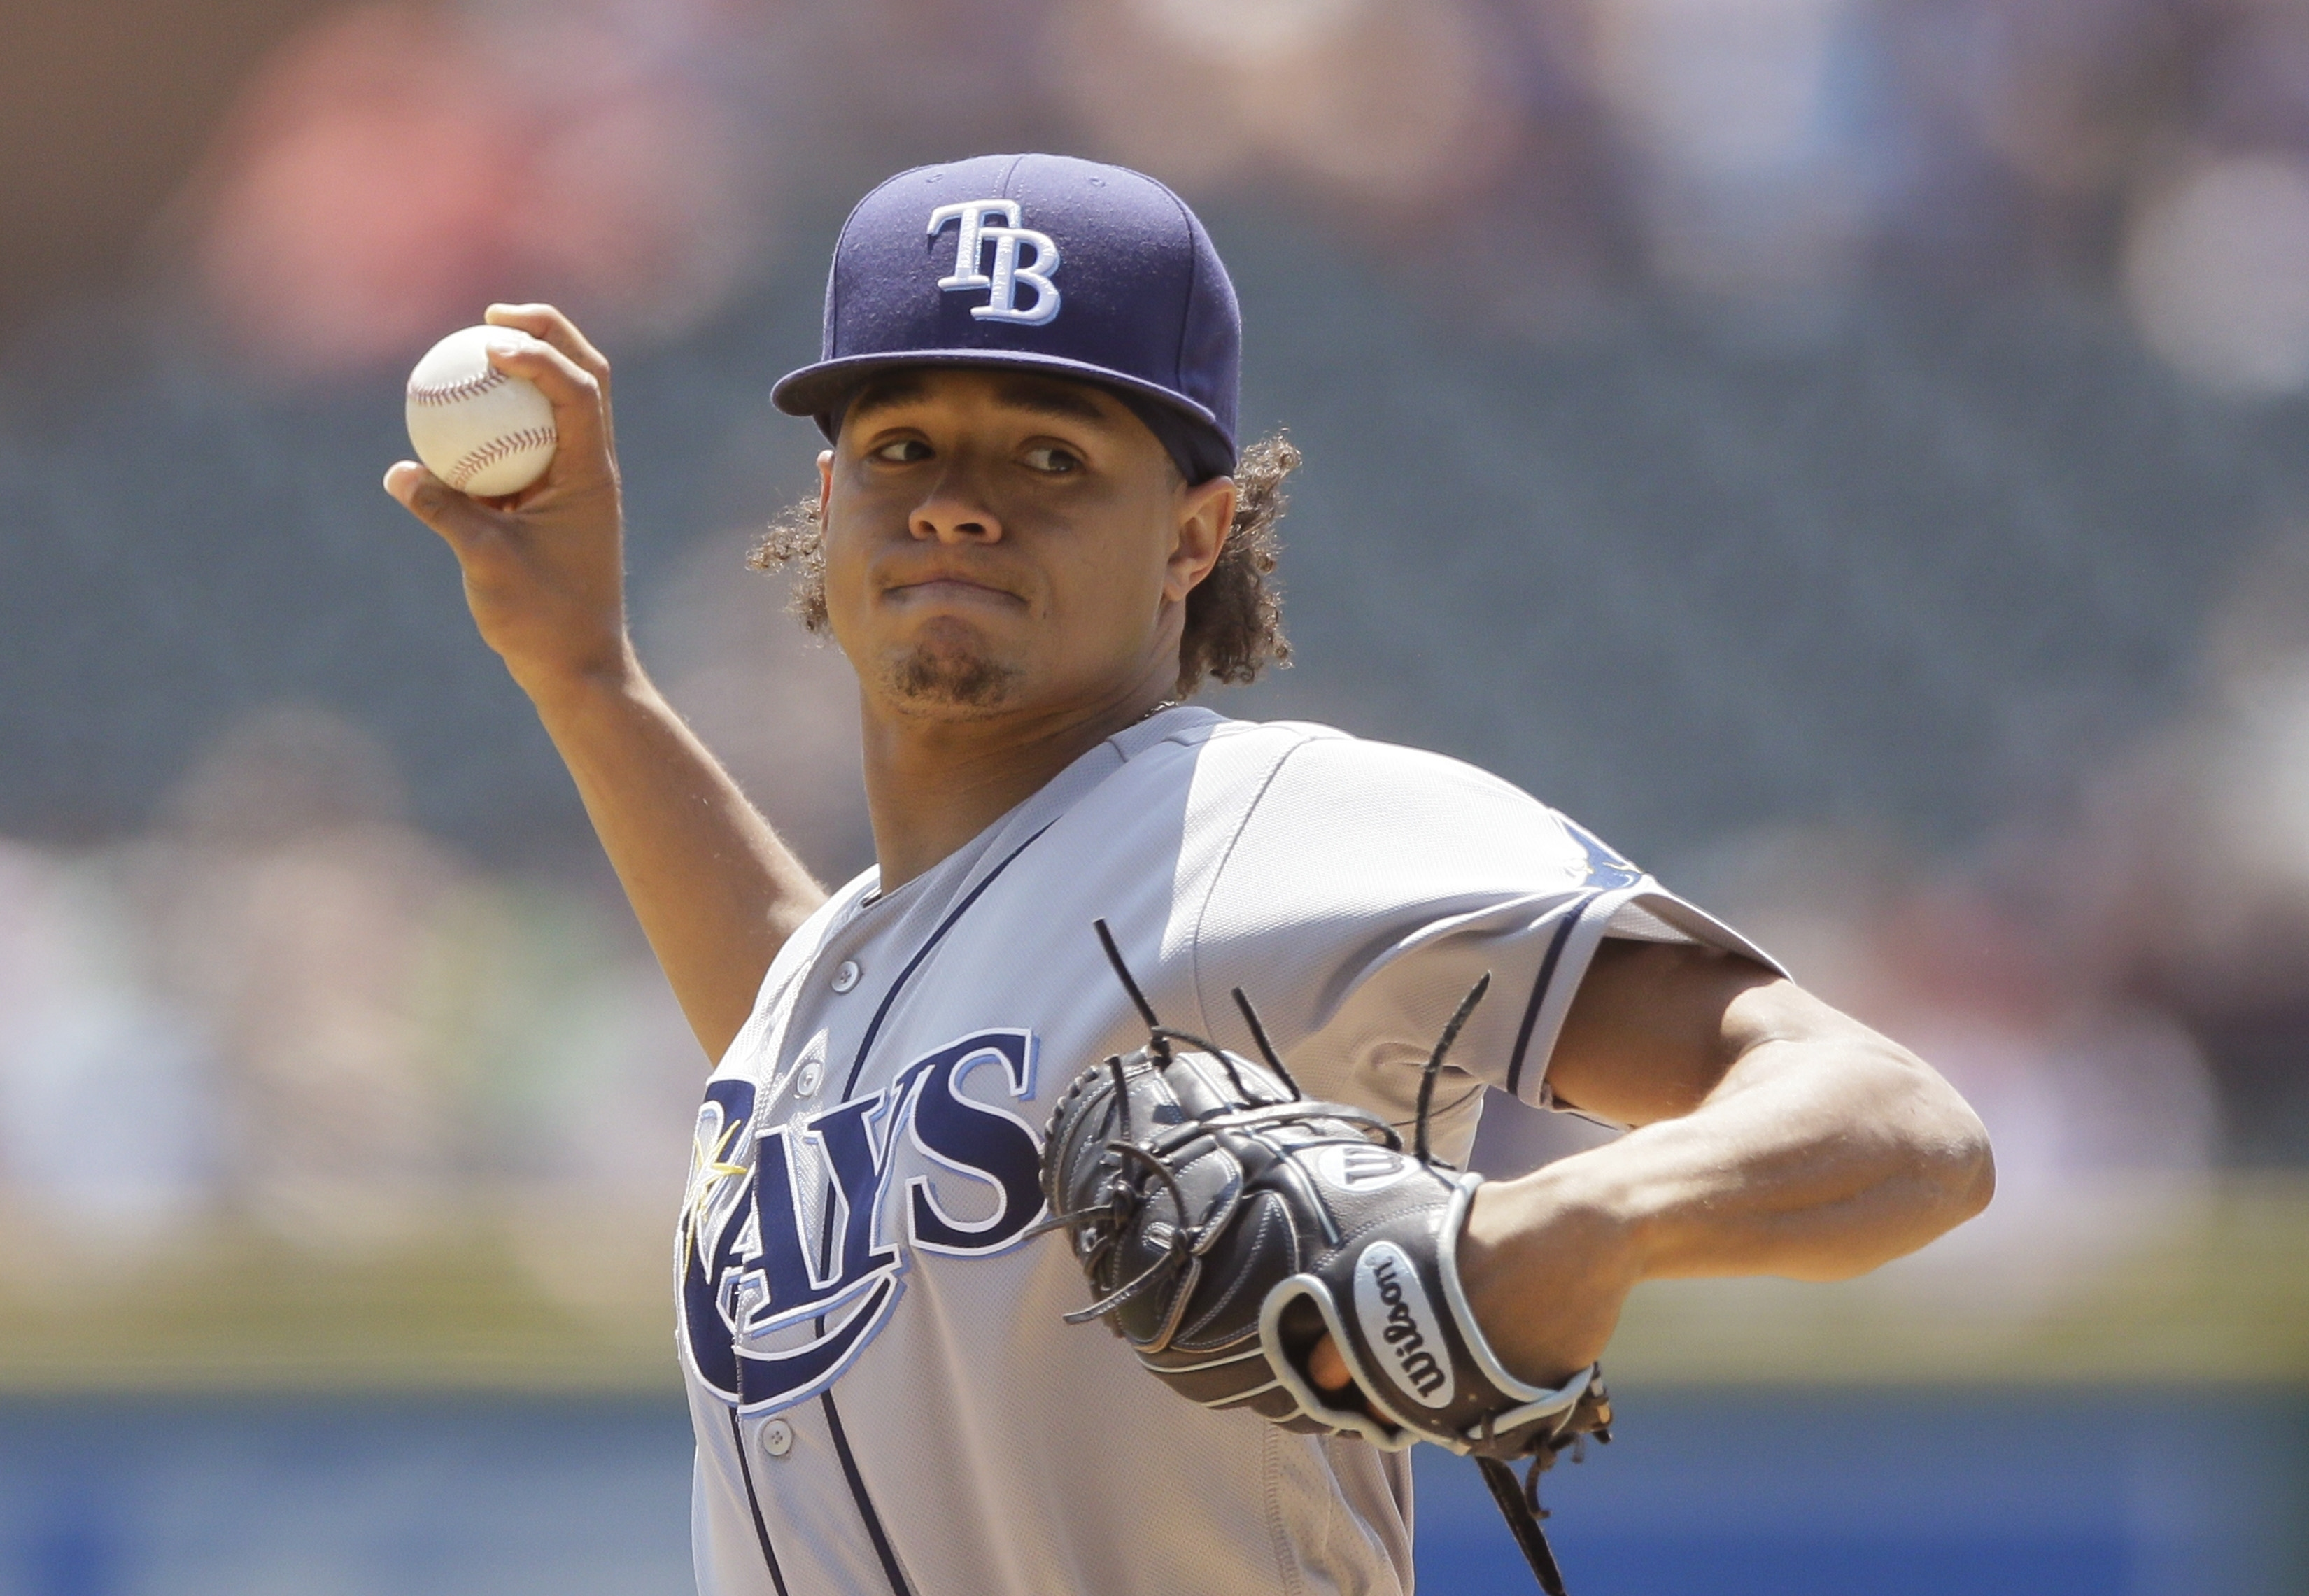 Tampa Bay Rays starting pitcher Chris Archer throws during the first inning of a baseball game against the Detroit Tigers, Sunday, May 22, 2016, in Detroit. (AP Photo/Carlos Osorio)